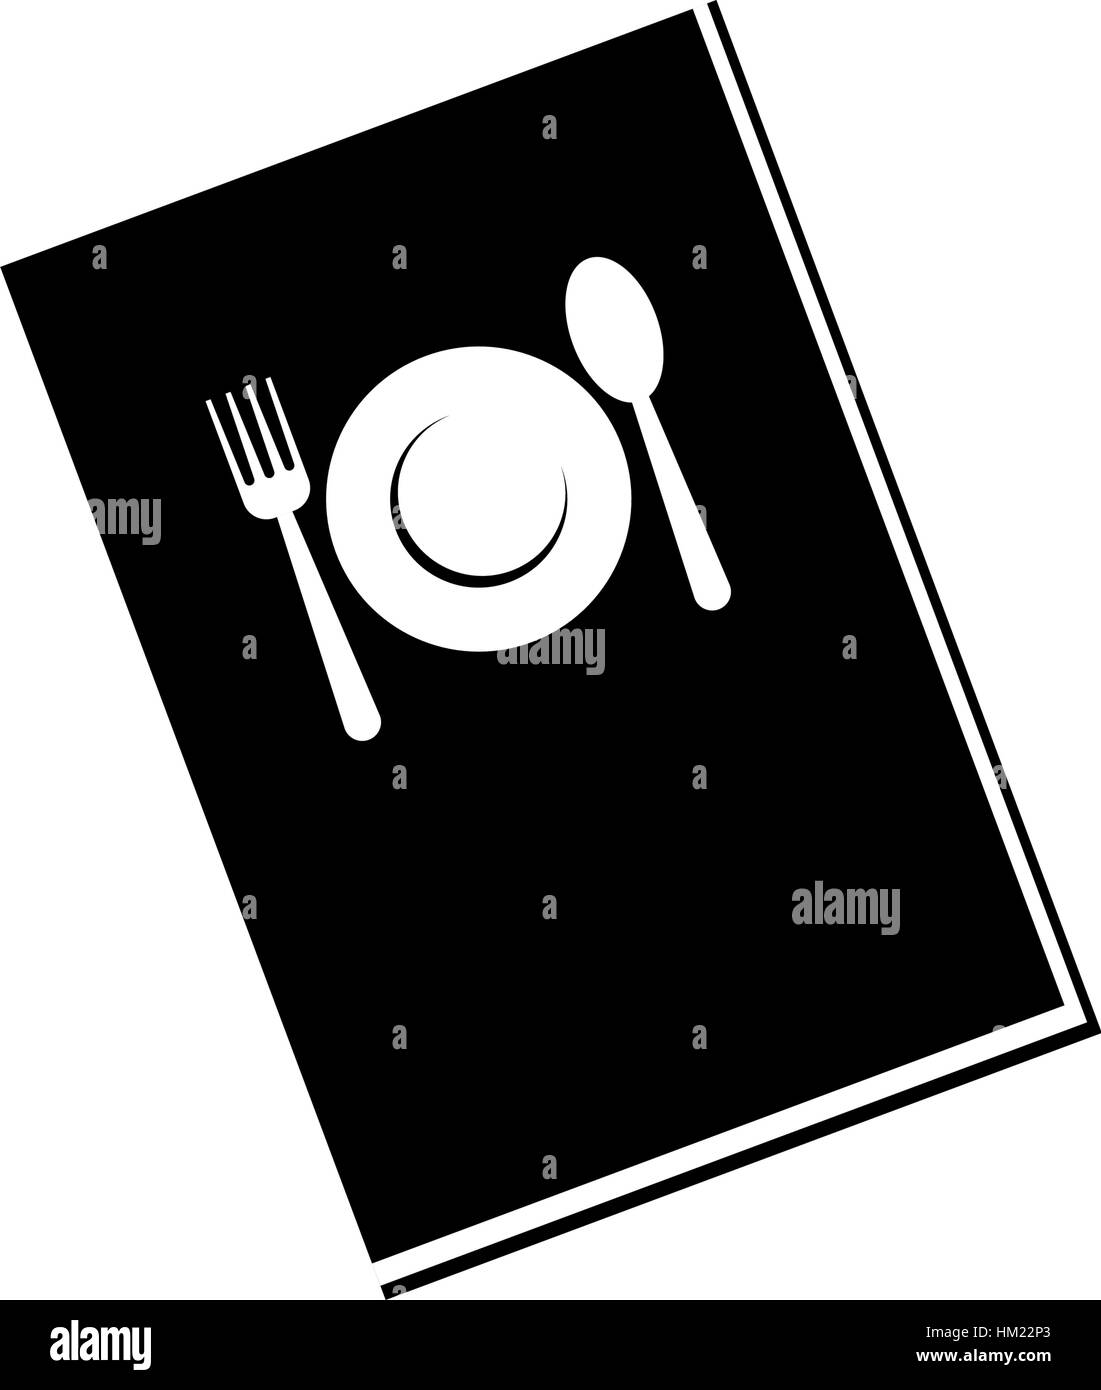 For restaurant pictures graphics illustrations clipart photos - Restaurant Menu Book Icon Vector Illustration Graphic Design